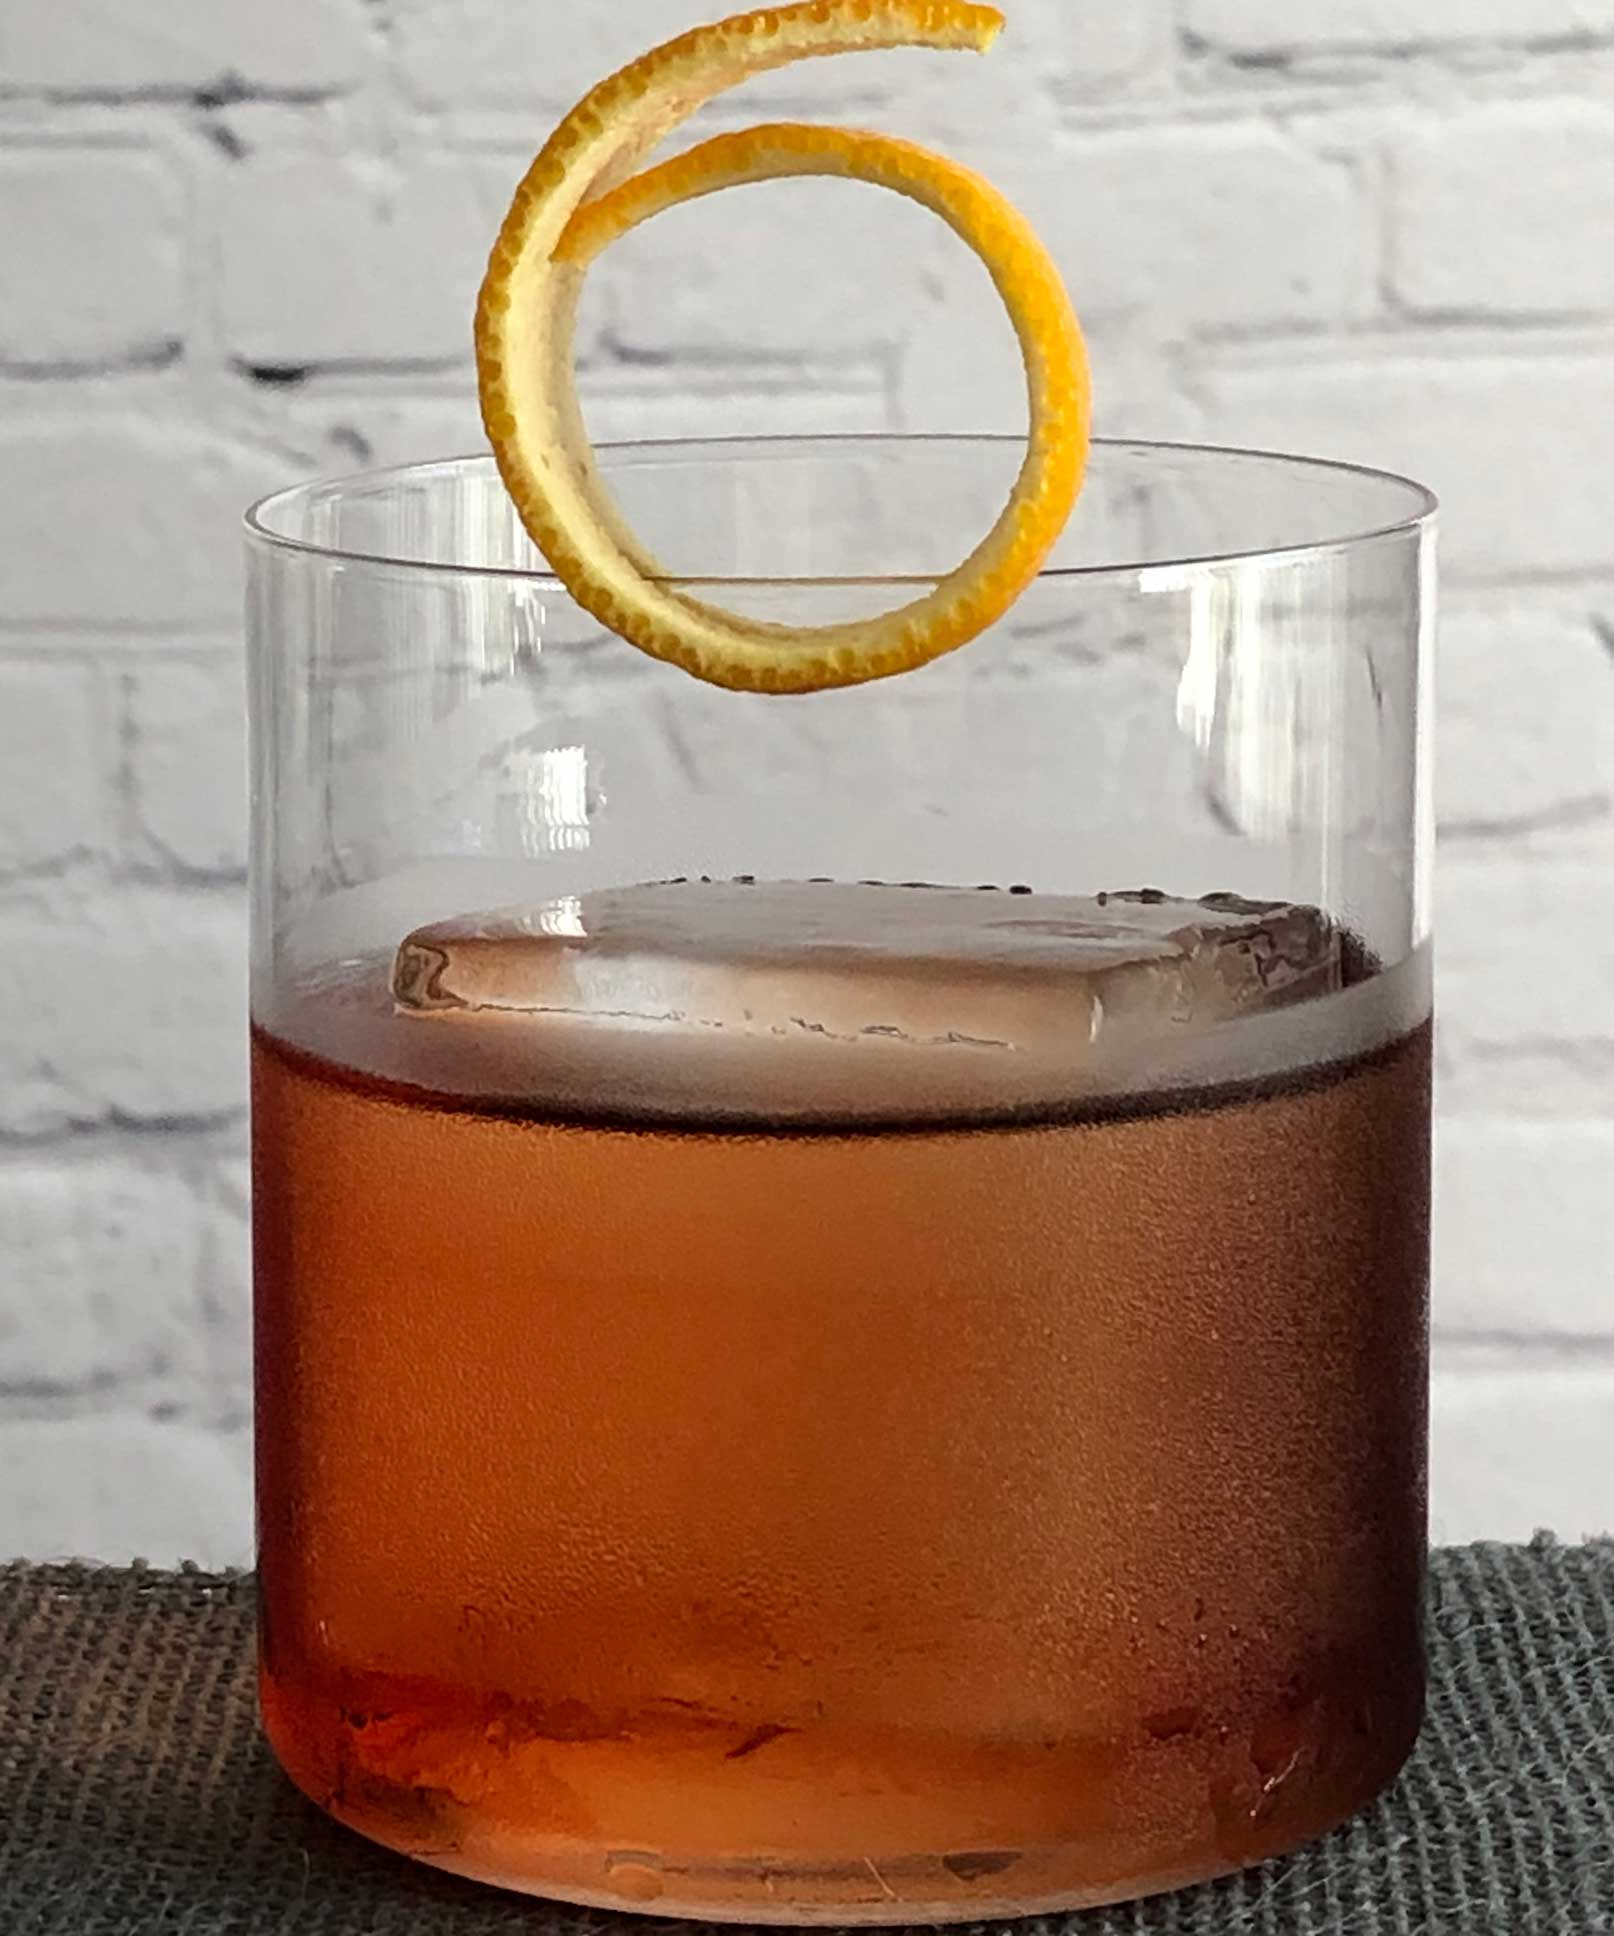 An example of the Crosstown Traffic, the mixed drink (cocktail) featuring Hayman's London Dry Gin, Cardamaro Vino Amaro, and Cocchi Americano Rosa; photo by Lee Edwards